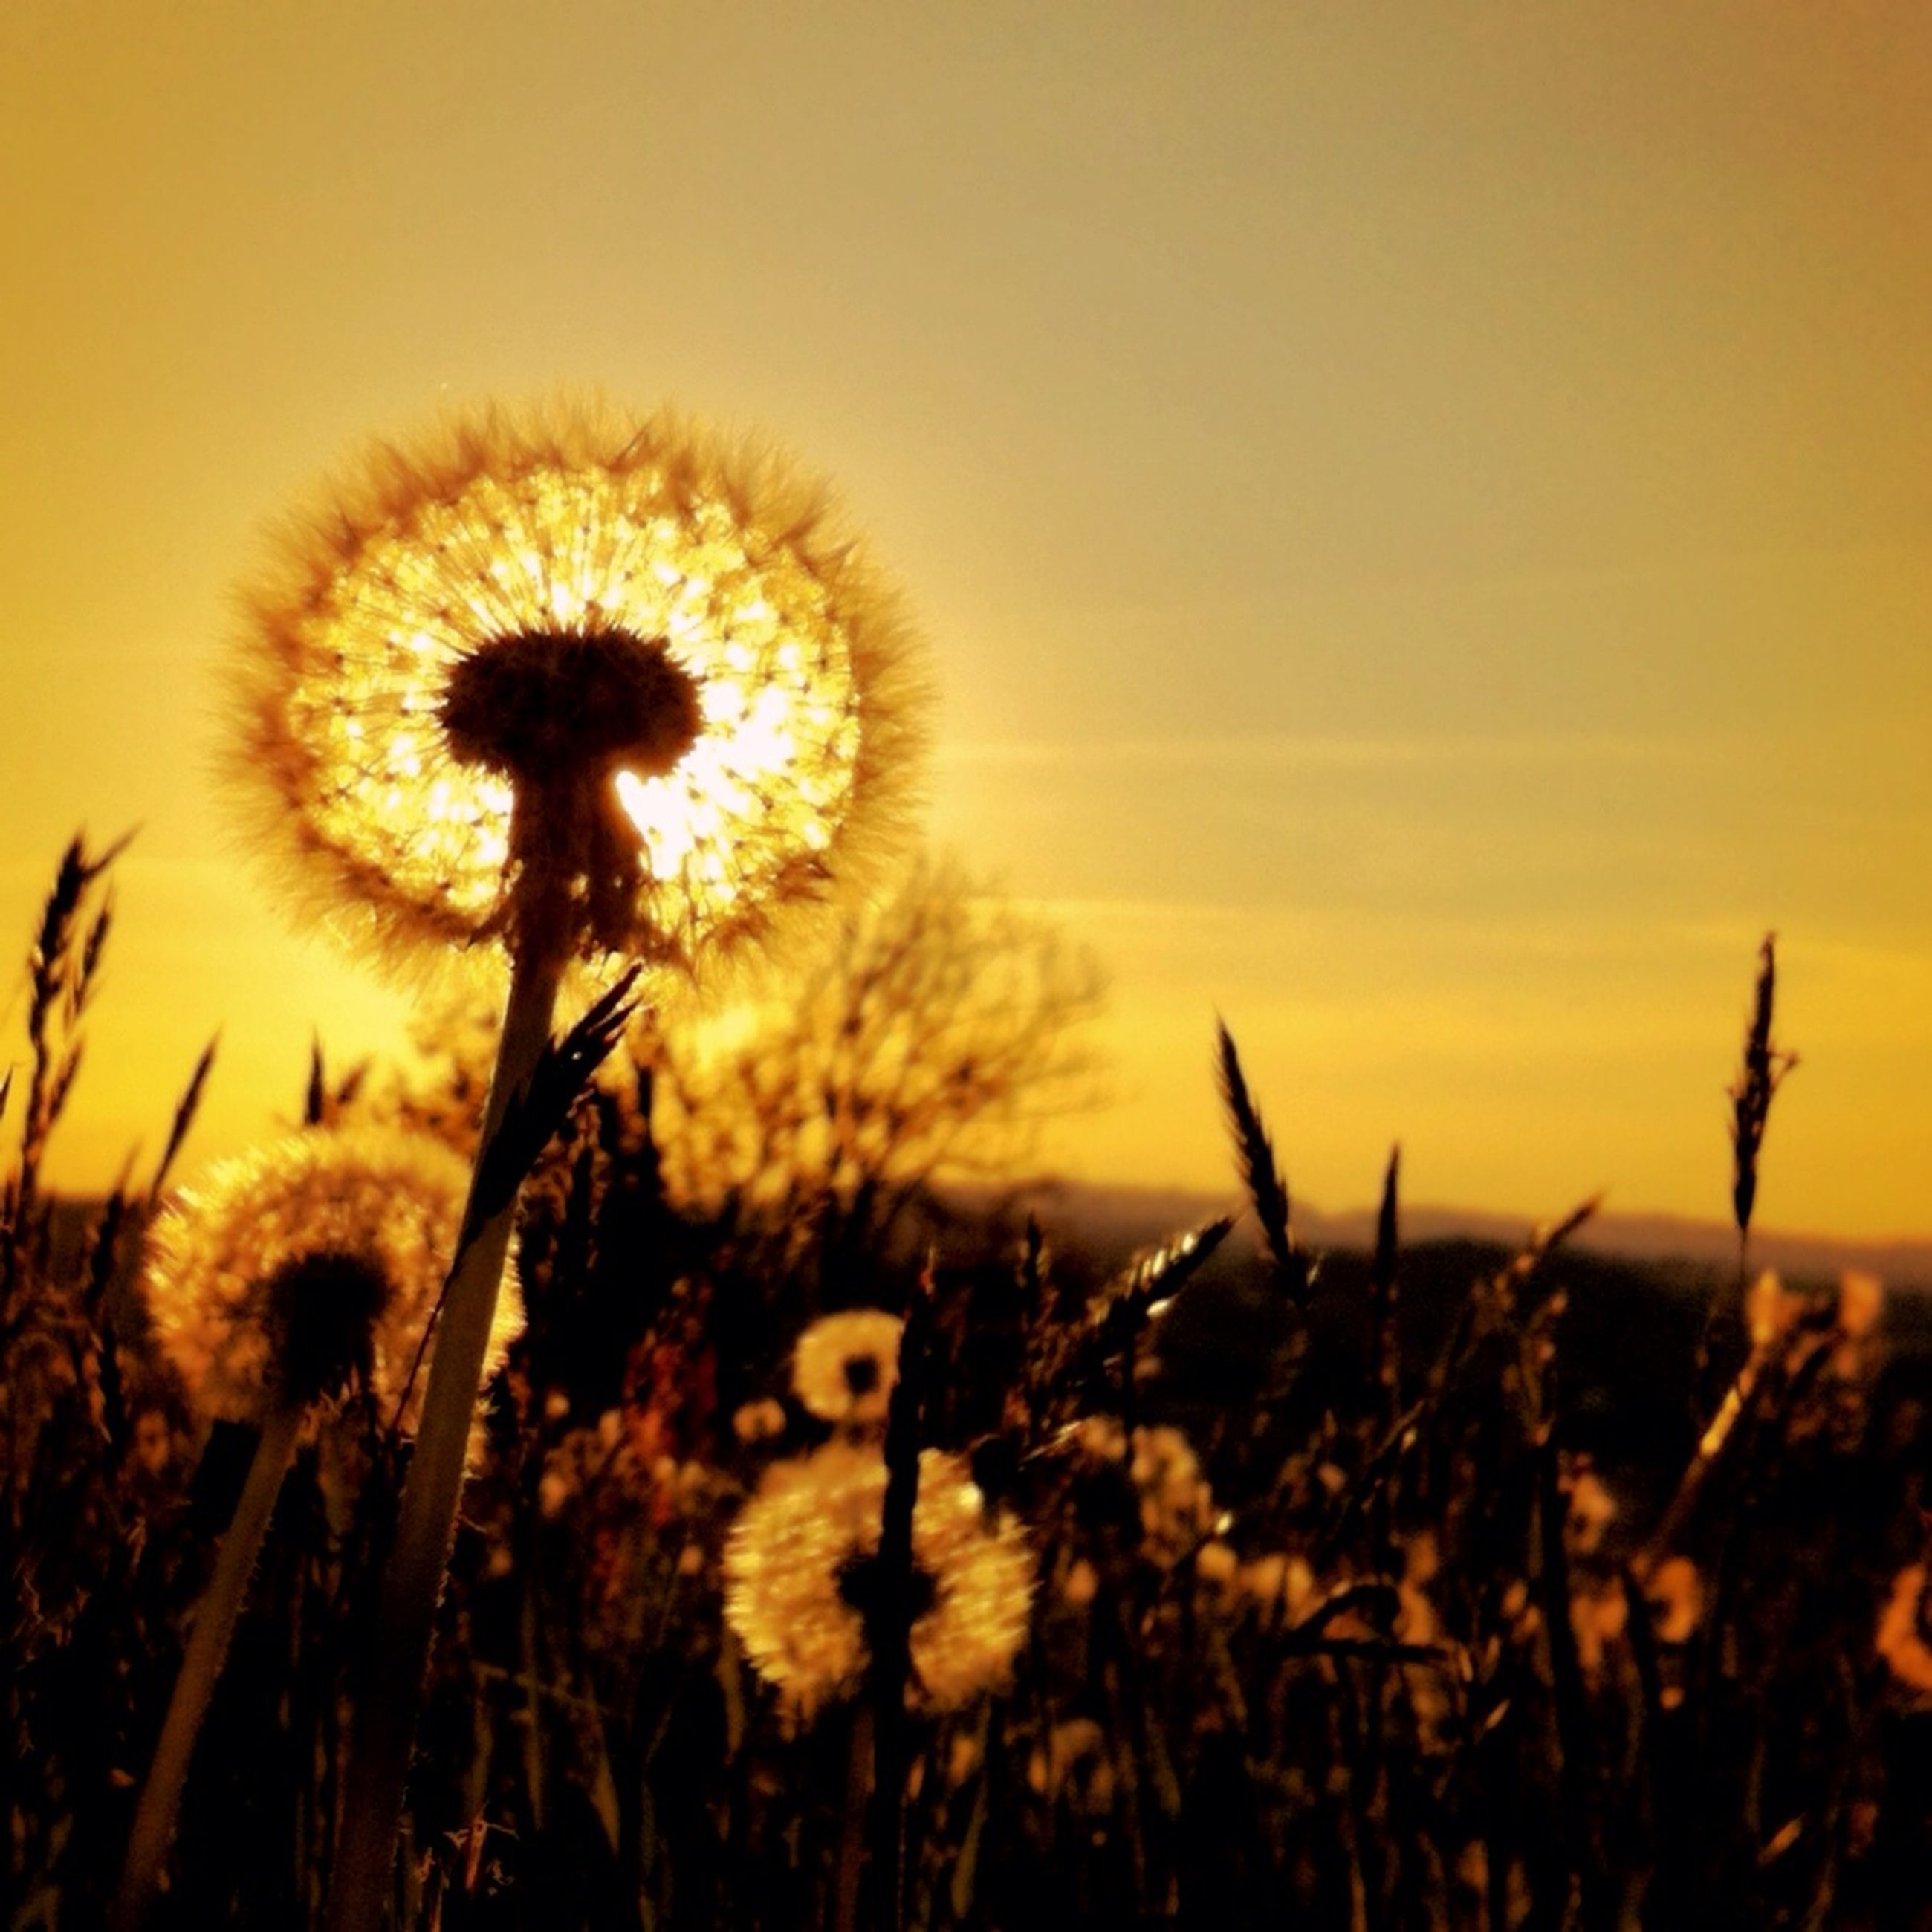 dandelion, flower, growth, fragility, beauty in nature, freshness, nature, stem, focus on foreground, flower head, field, close-up, plant, yellow, sunset, sky, clear sky, uncultivated, outdoors, selective focus